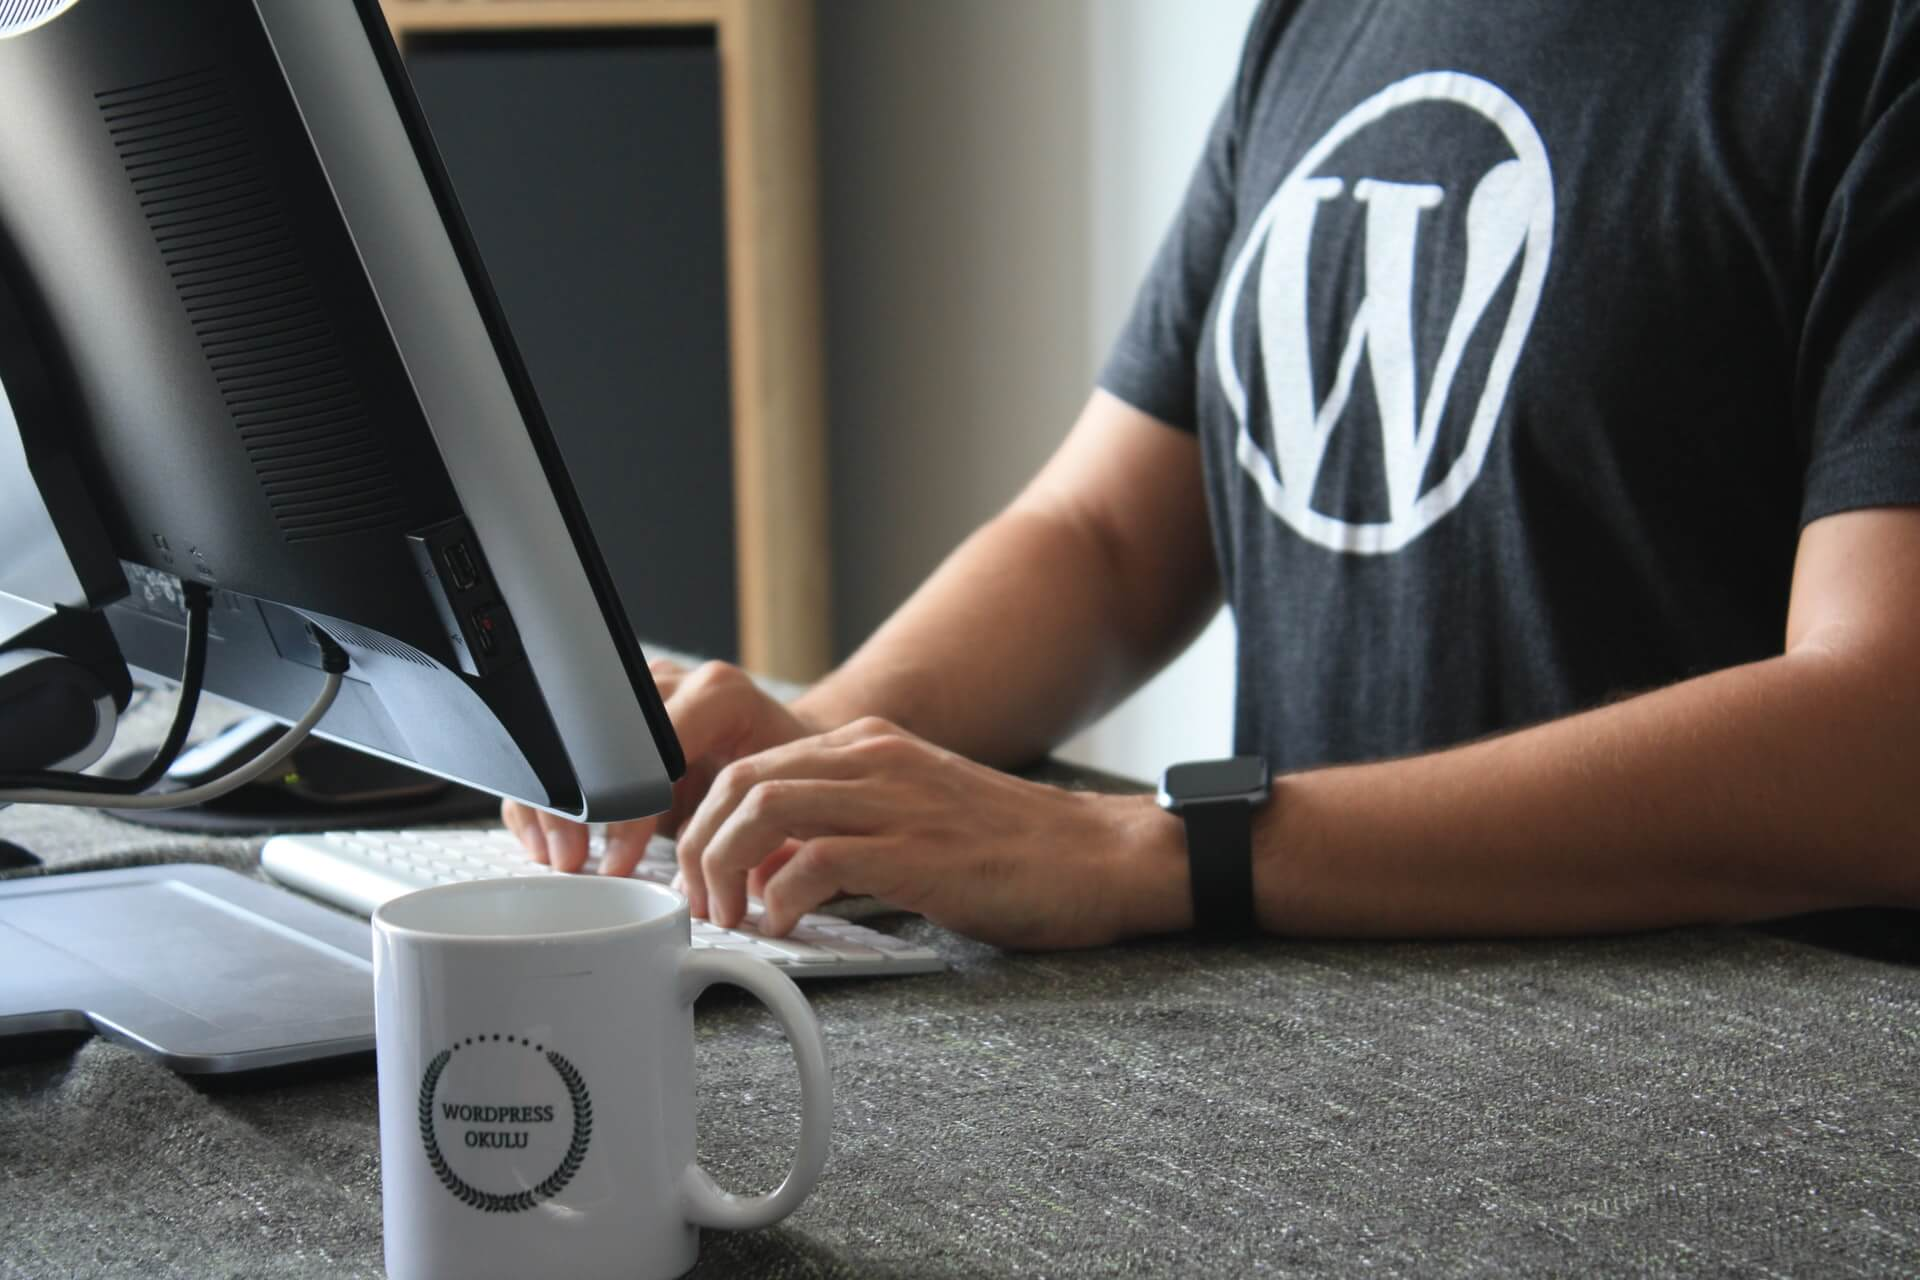 An Overview of WordPress 5.5 Release